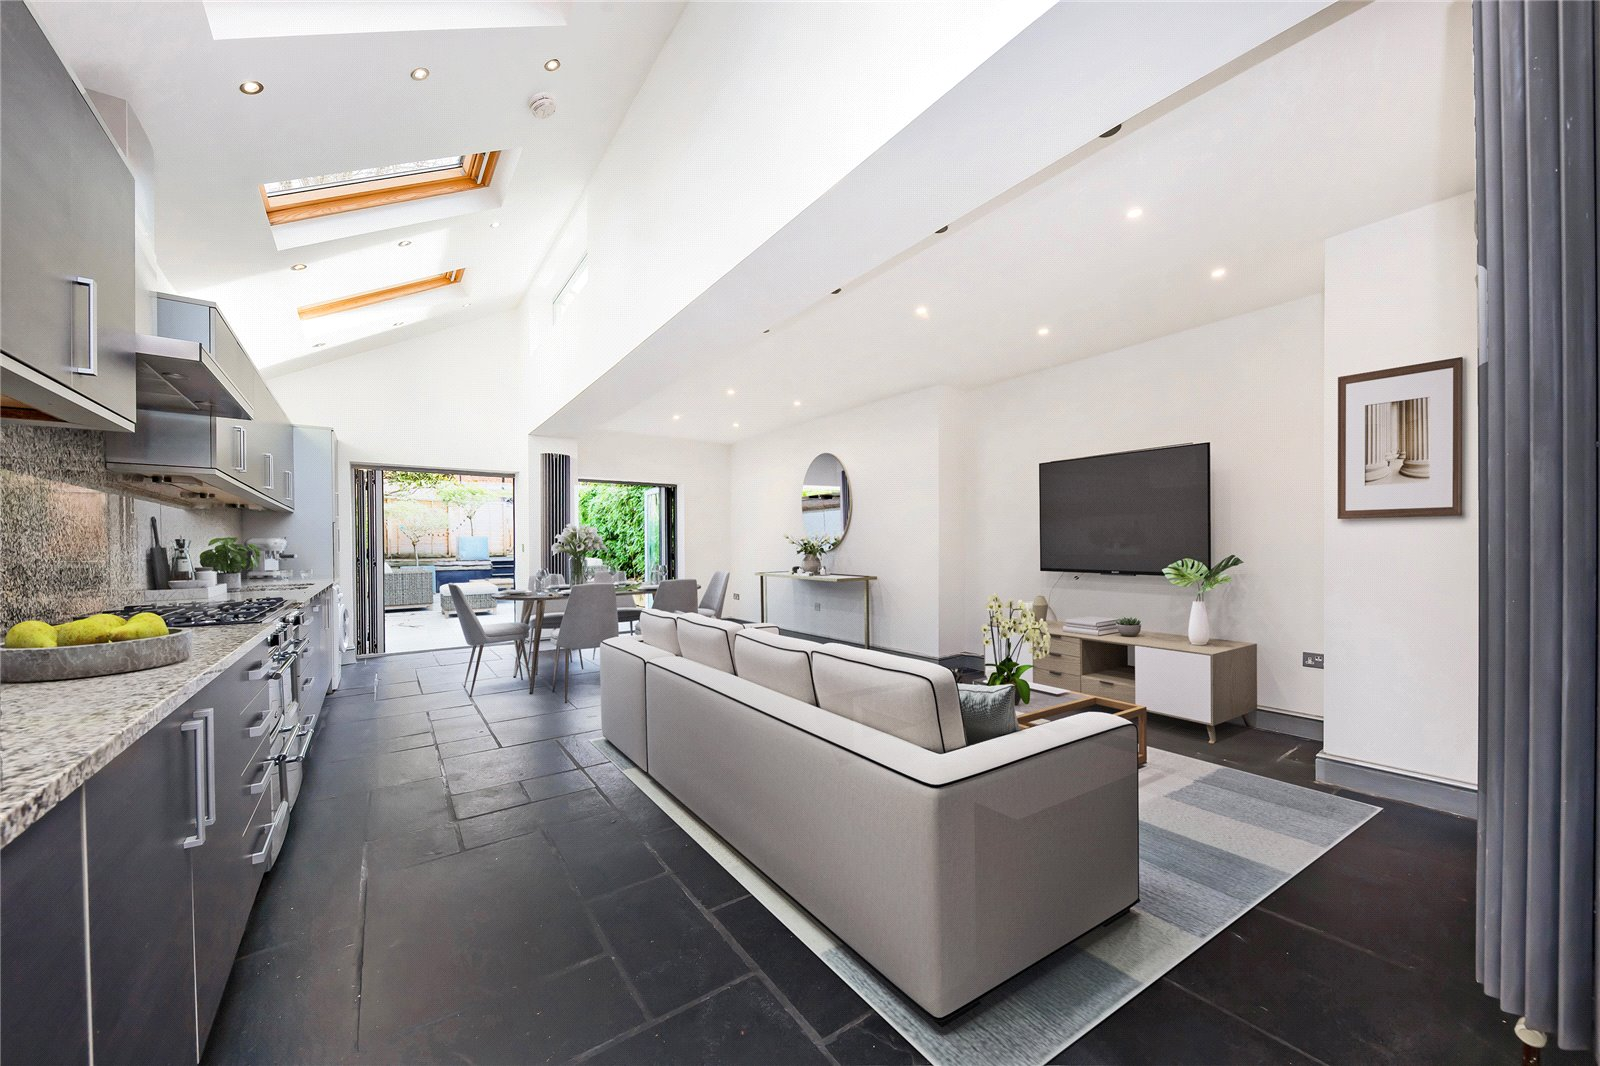 4 bed house for sale in Cricklewood, NW2 6QE, NW2